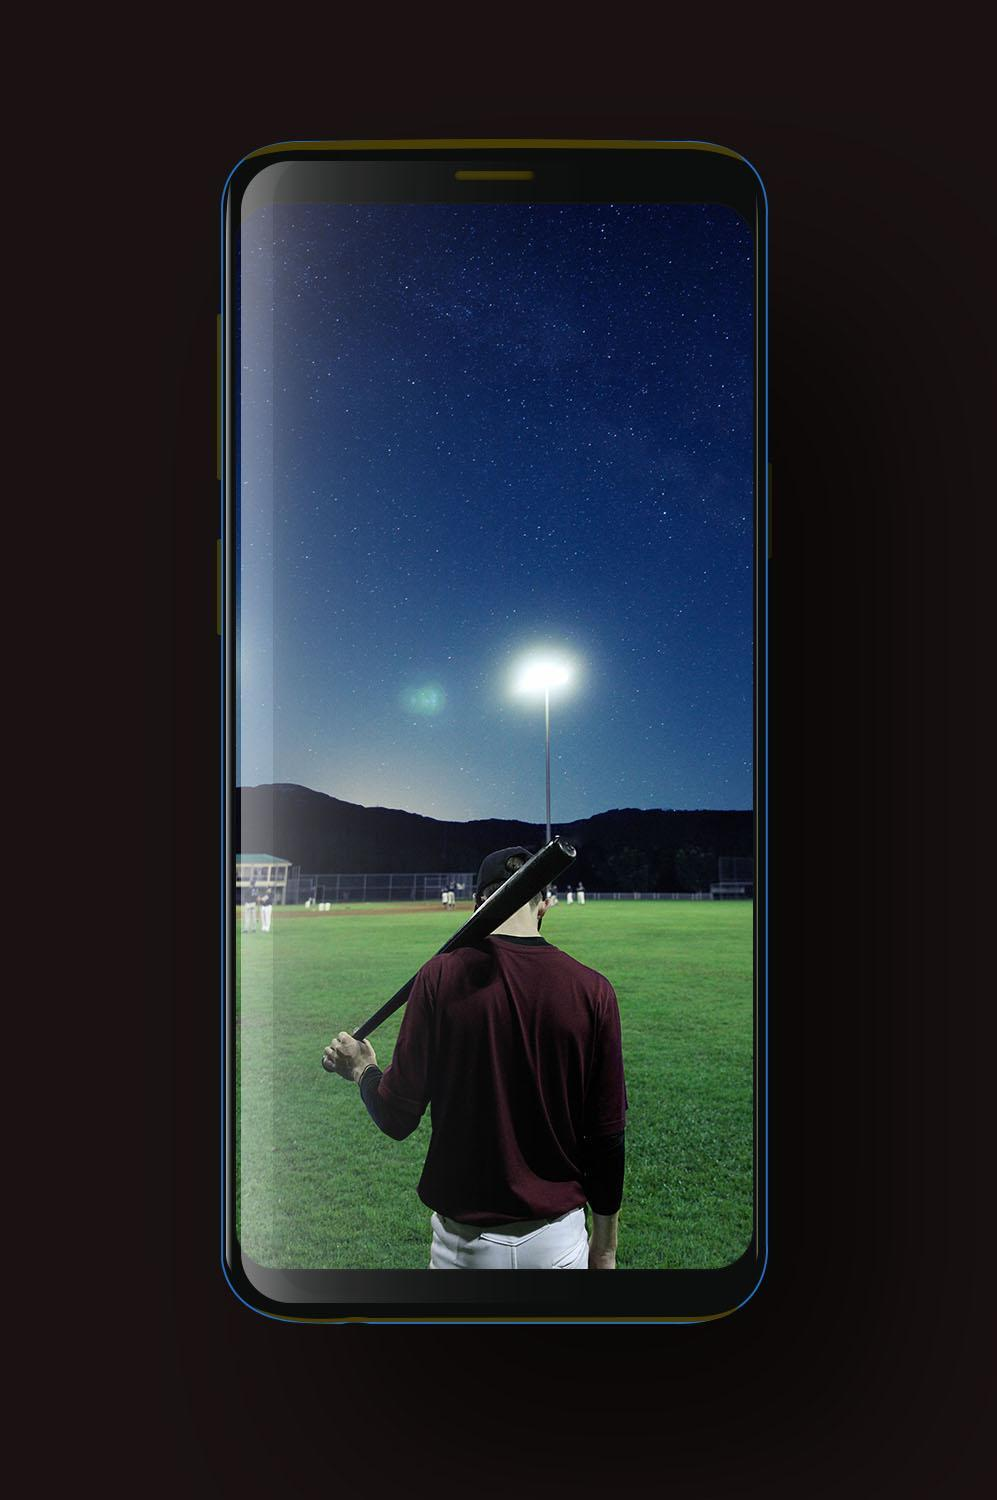 Baseball Wallpaper Hd Gif For Android Apk Download